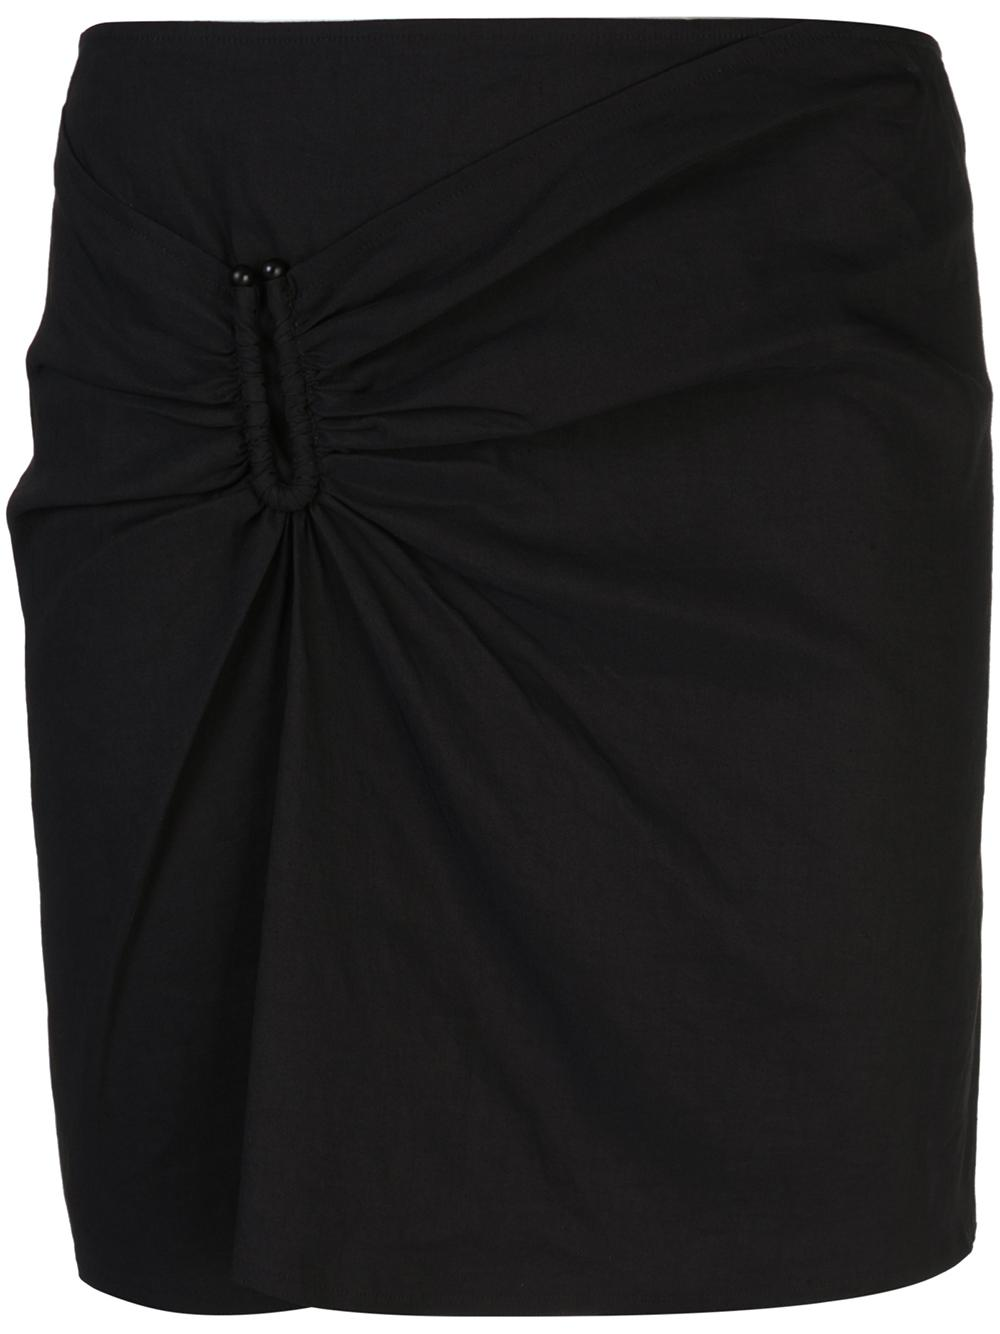 Burke Front Knot Mini Skirt Item # 3SKRT00164